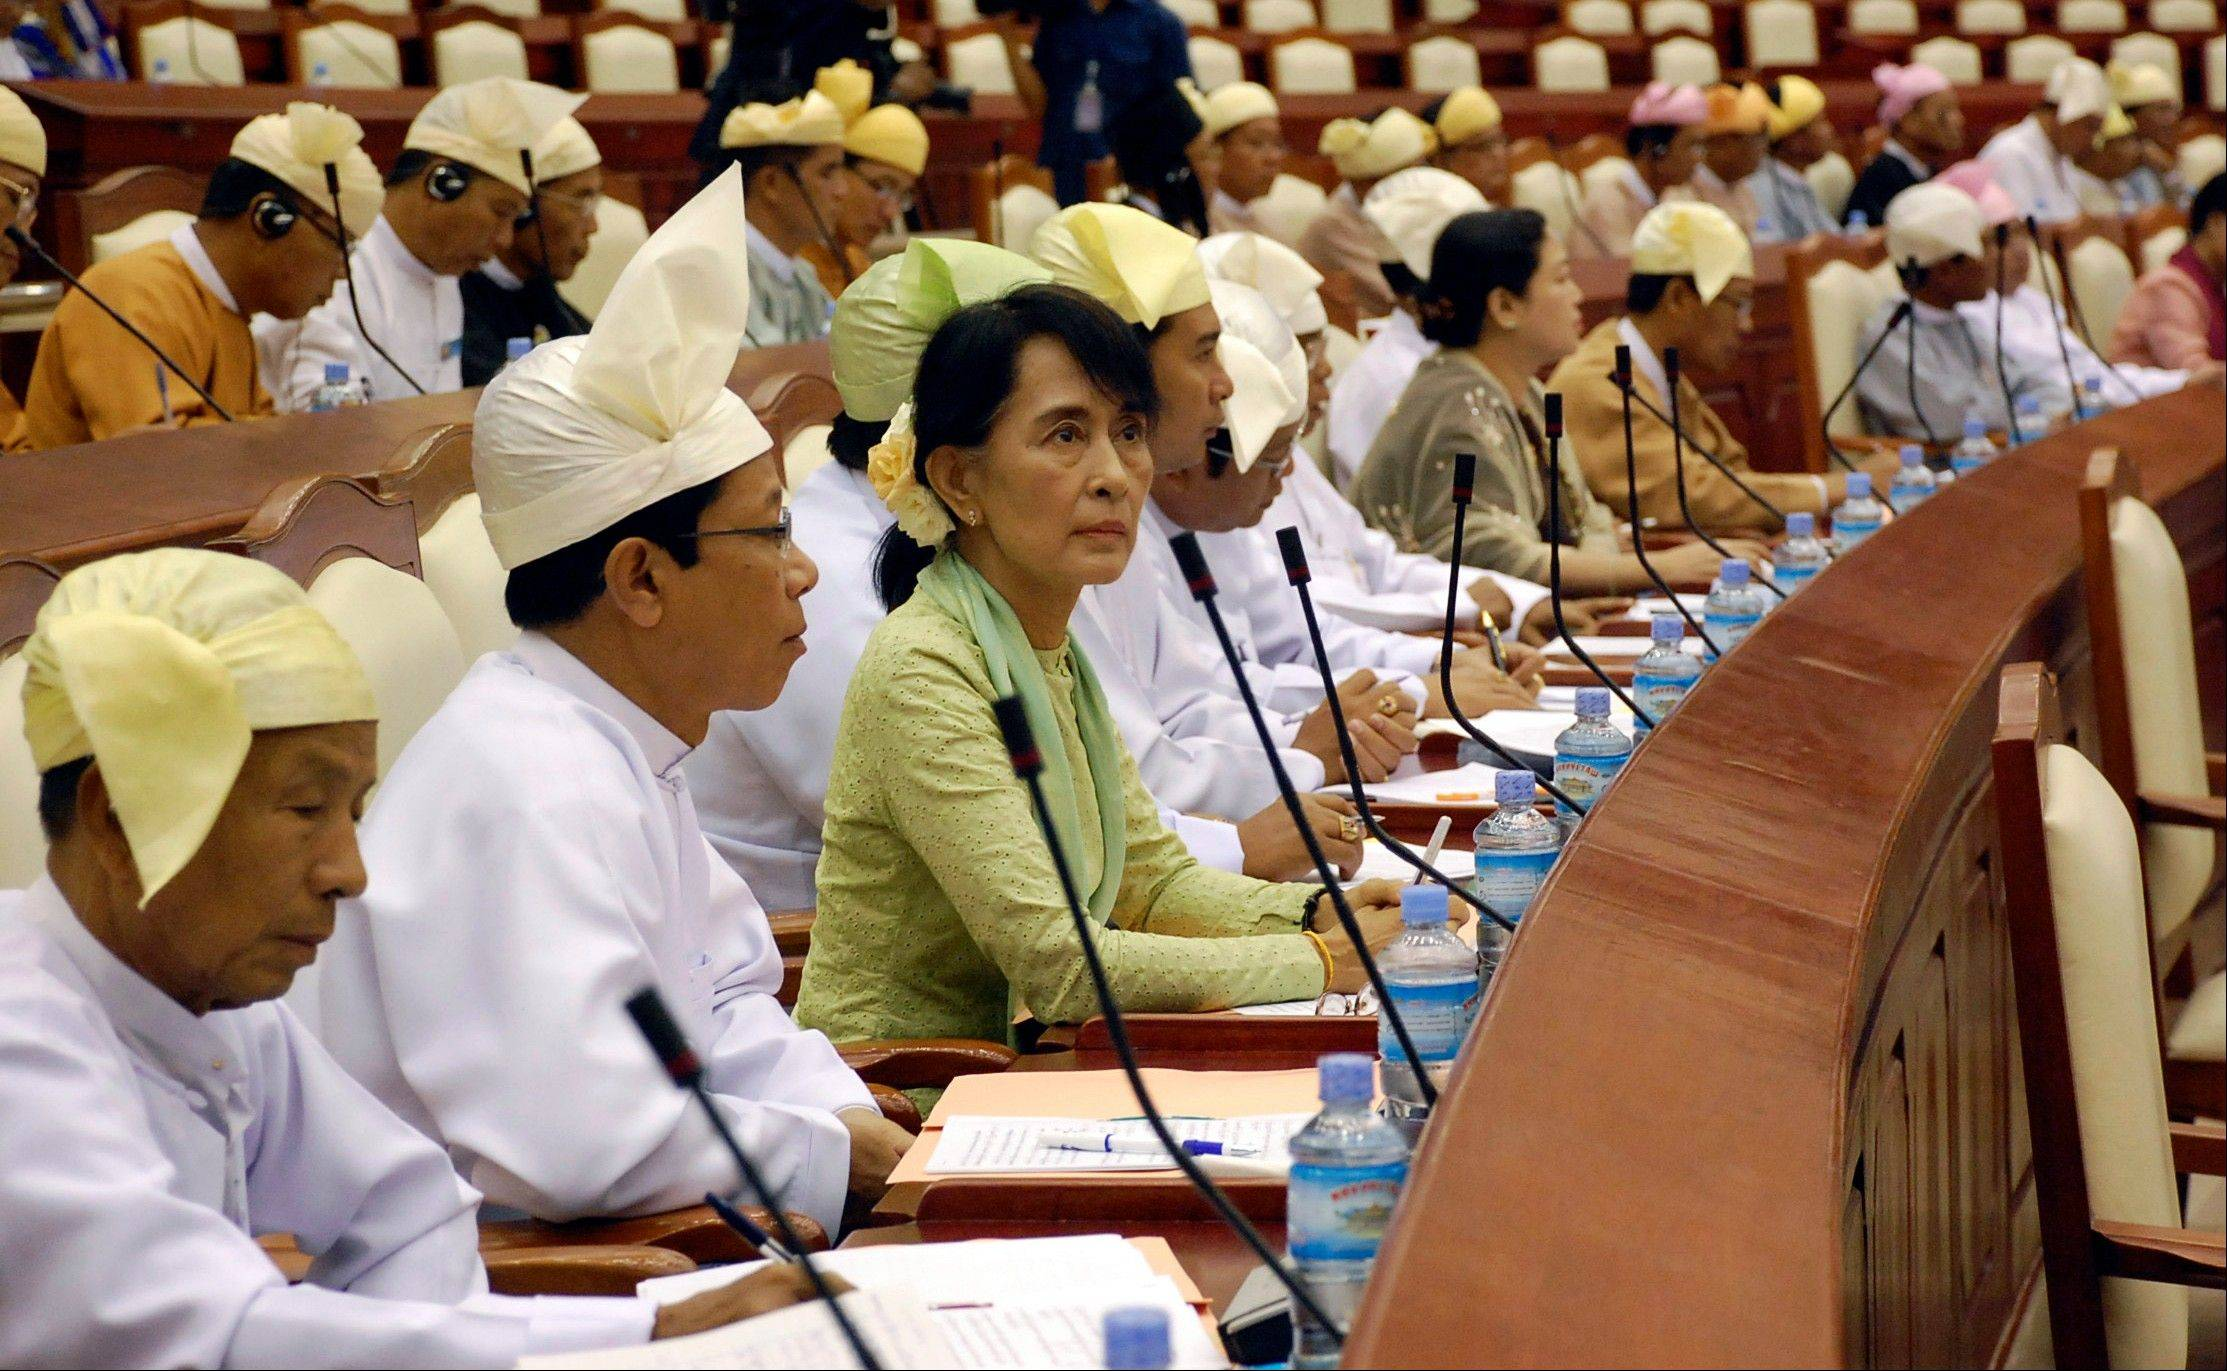 Myanmar opposition leader Aung San Suu Kyi, third from left, takes a seat for a regular session of Parliament at Myanmar�s Lower House for the first time Monday.